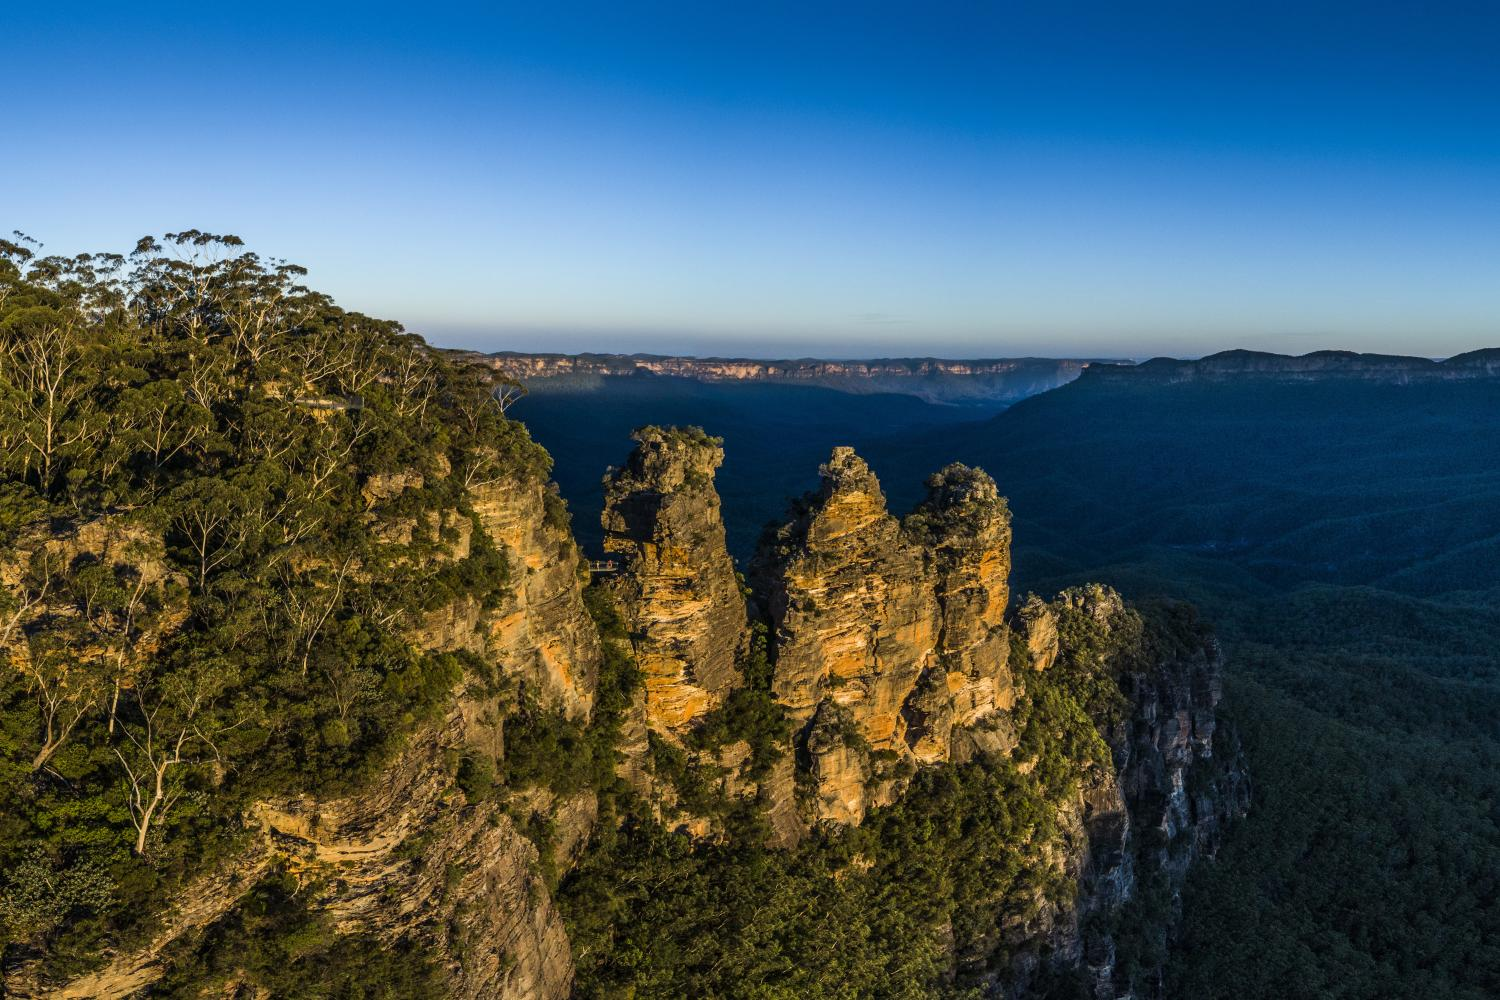 Sun setting over The Three Sisters, Katoomba in the Blue Mountains